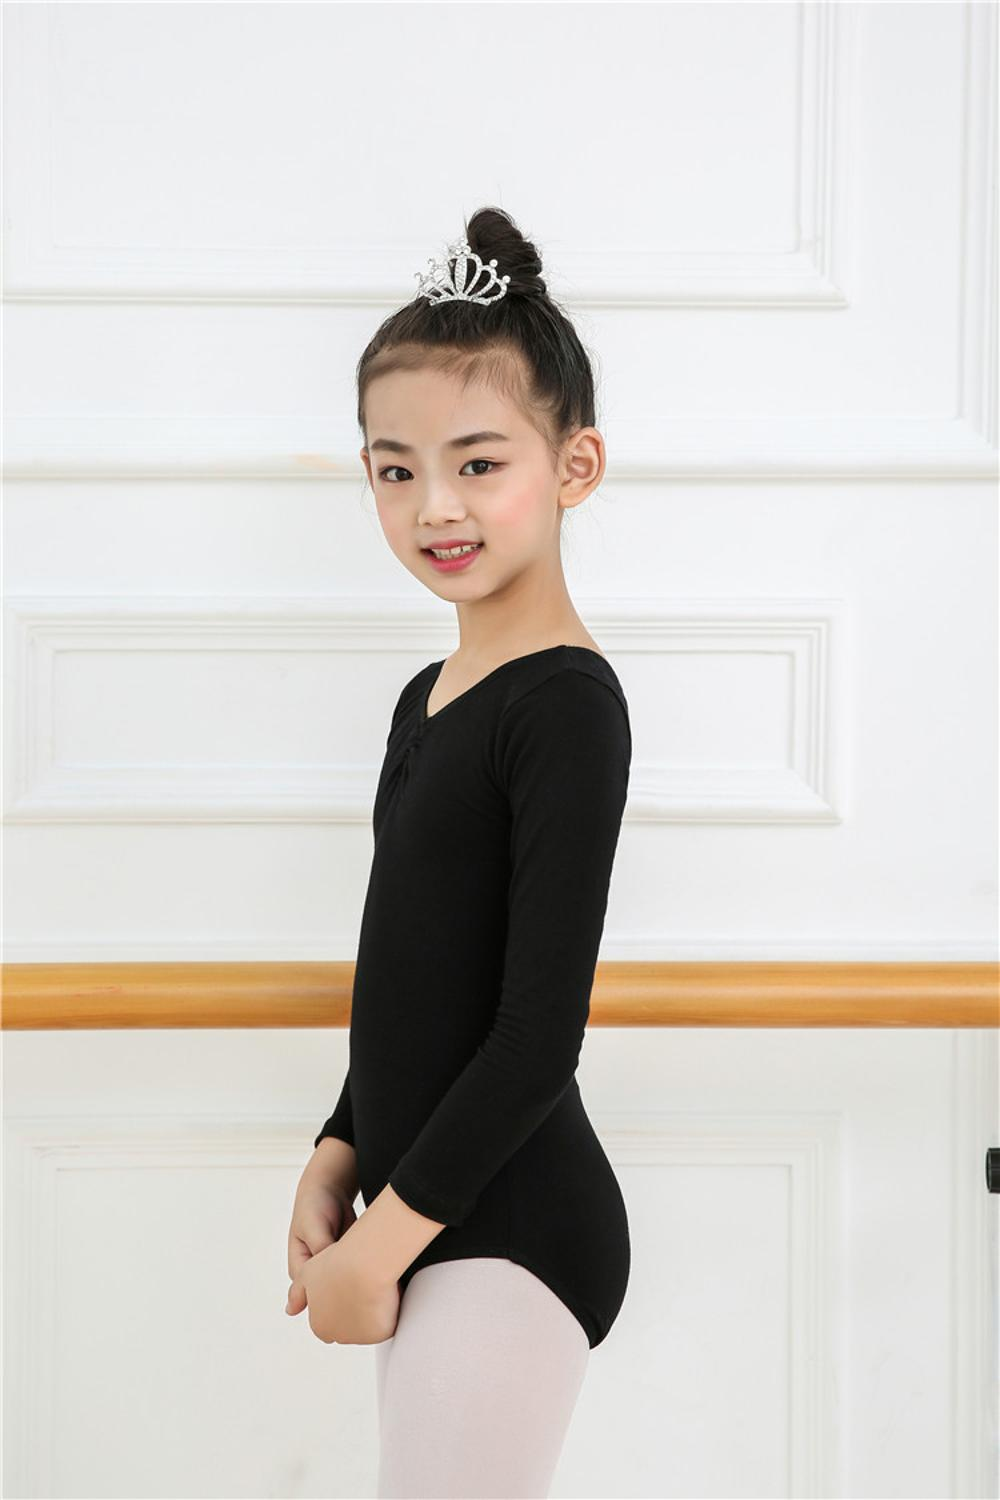 80334dd596f8 China Dance Costume Child, China Dance Costume Child Manufacturers and  Suppliers on Alibaba.com